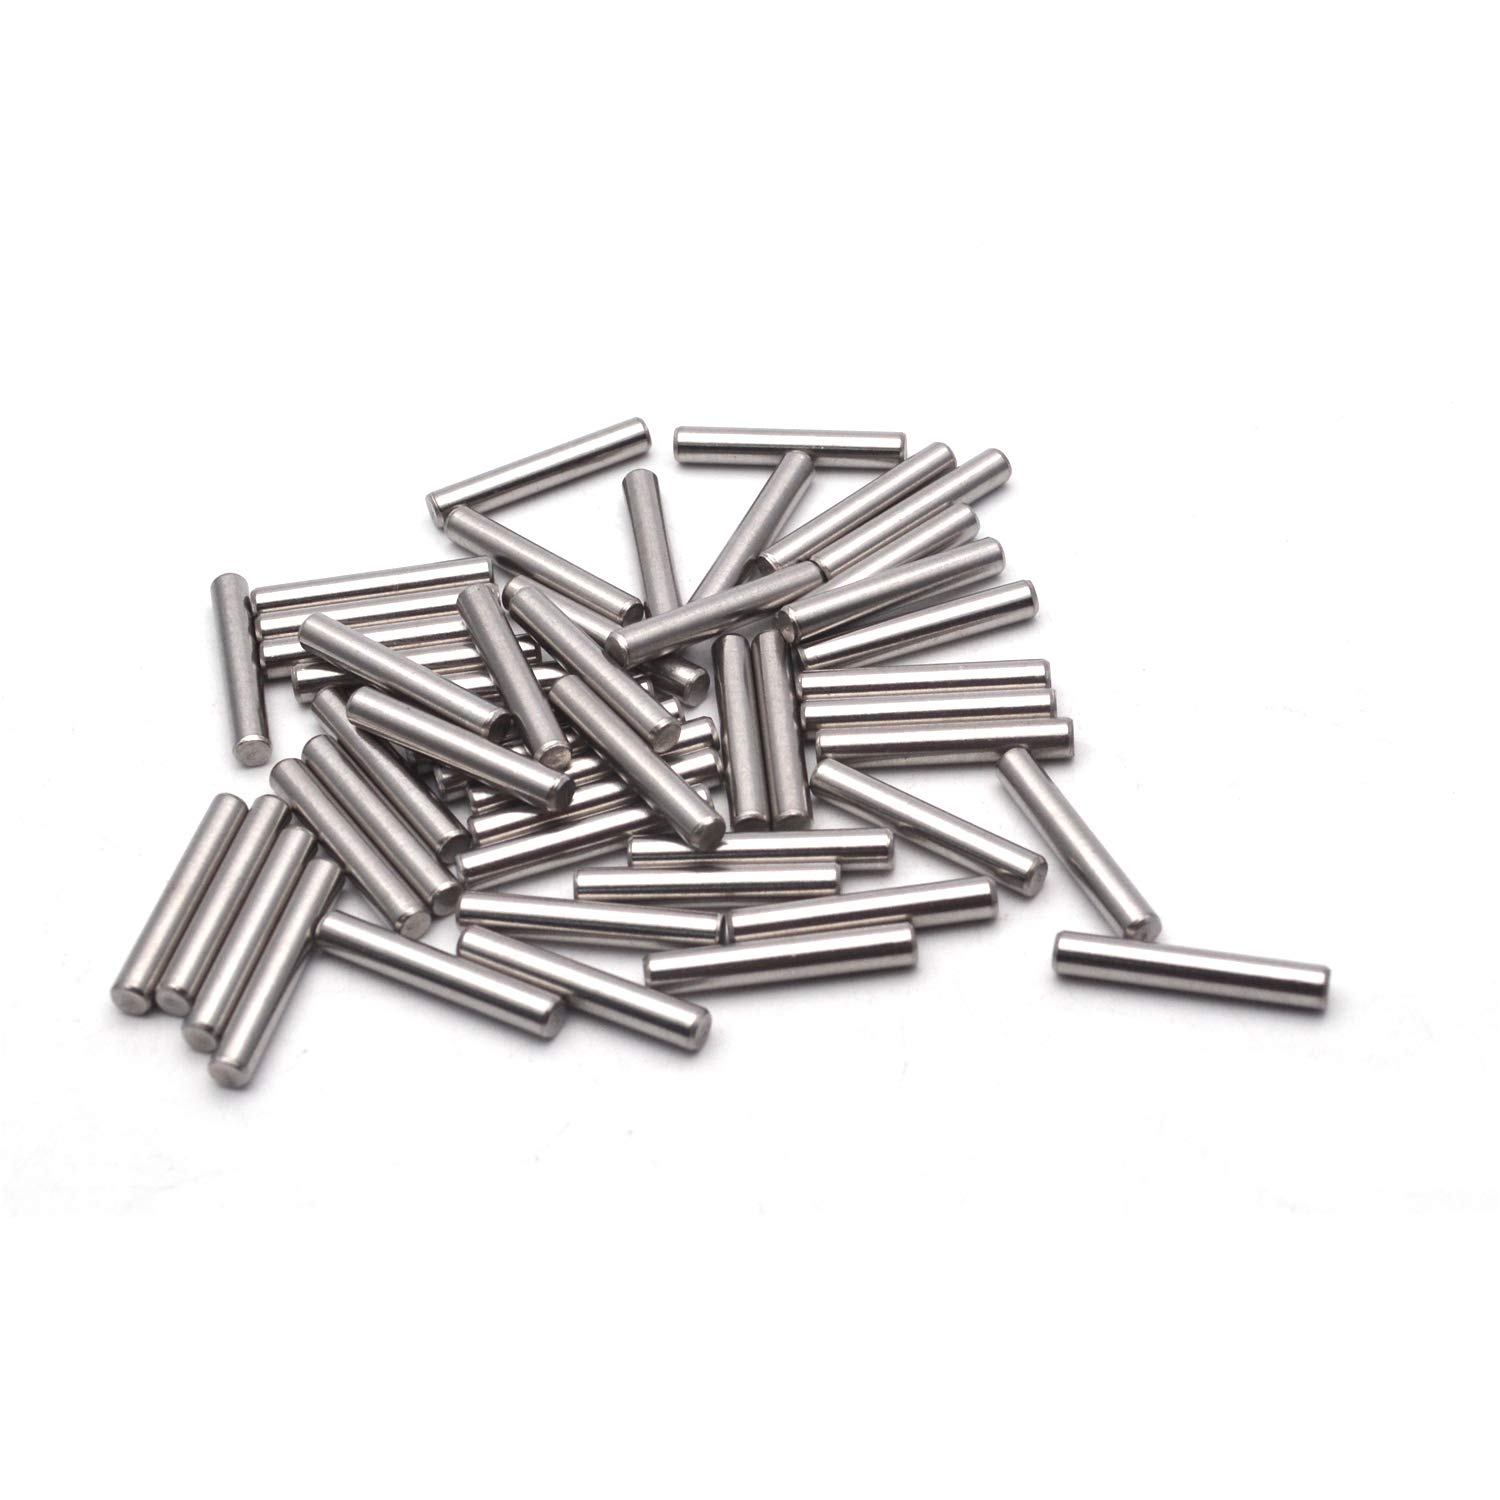 Antrader 50PCS GB119 304 Stainless Steel Cylindrical Pin Locating Pin Dowel Pins 5 x 25m